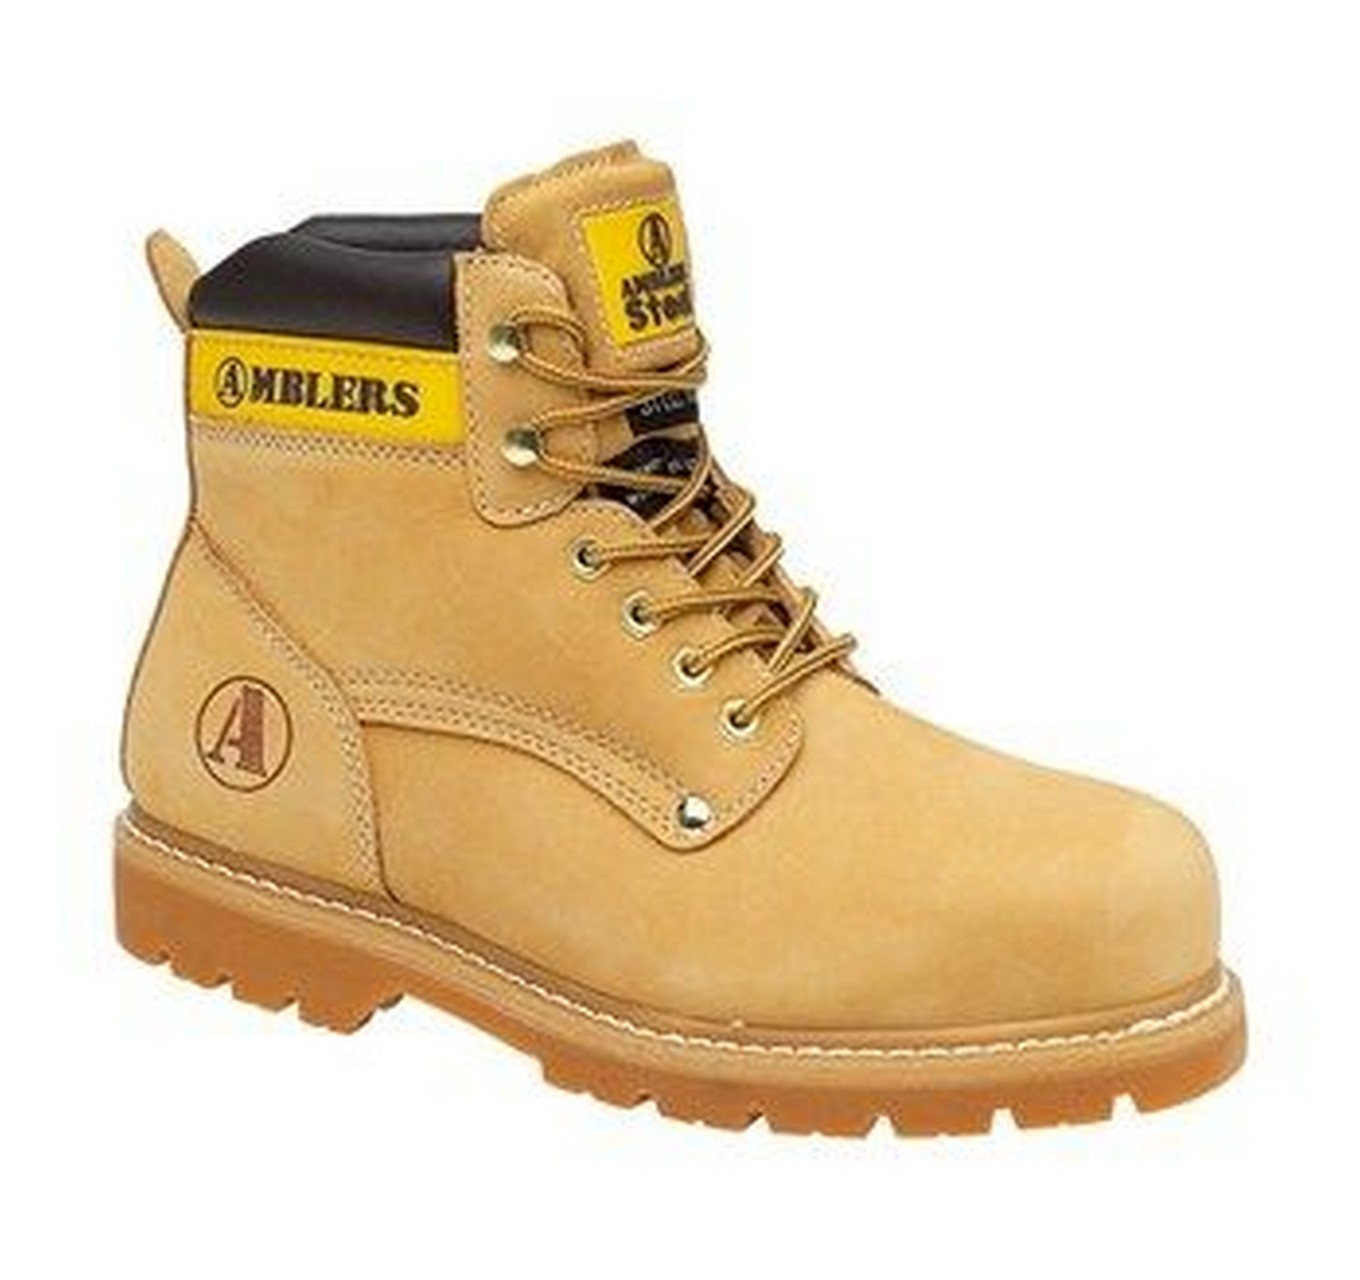 Safety Boot Amblers Fs156 7